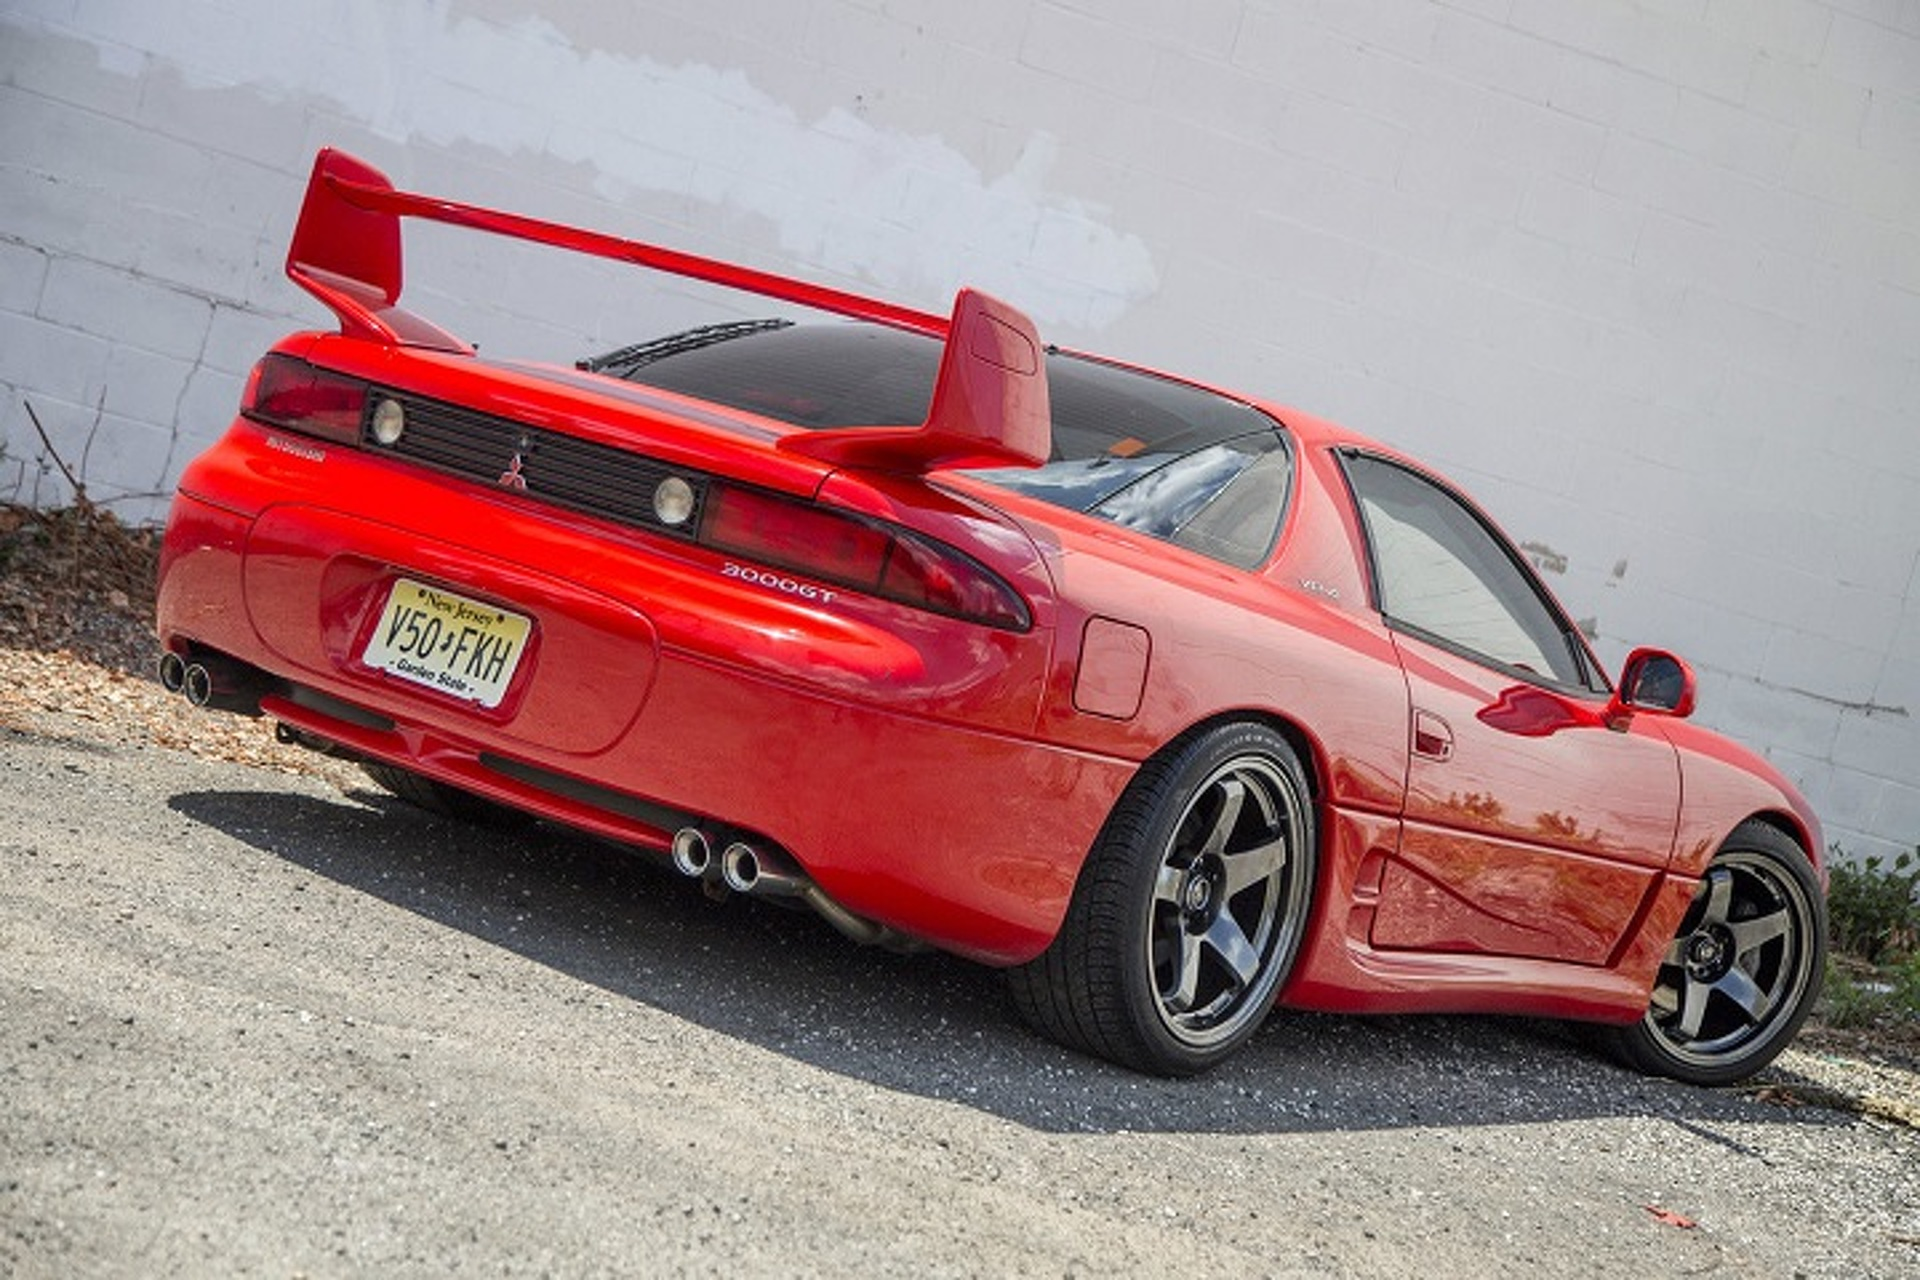 New Mitsubishi 3000gt >> Extremely Clean 1999 Mitsubishi 3000GT VR4 Will Bring Out the Fanboy in You